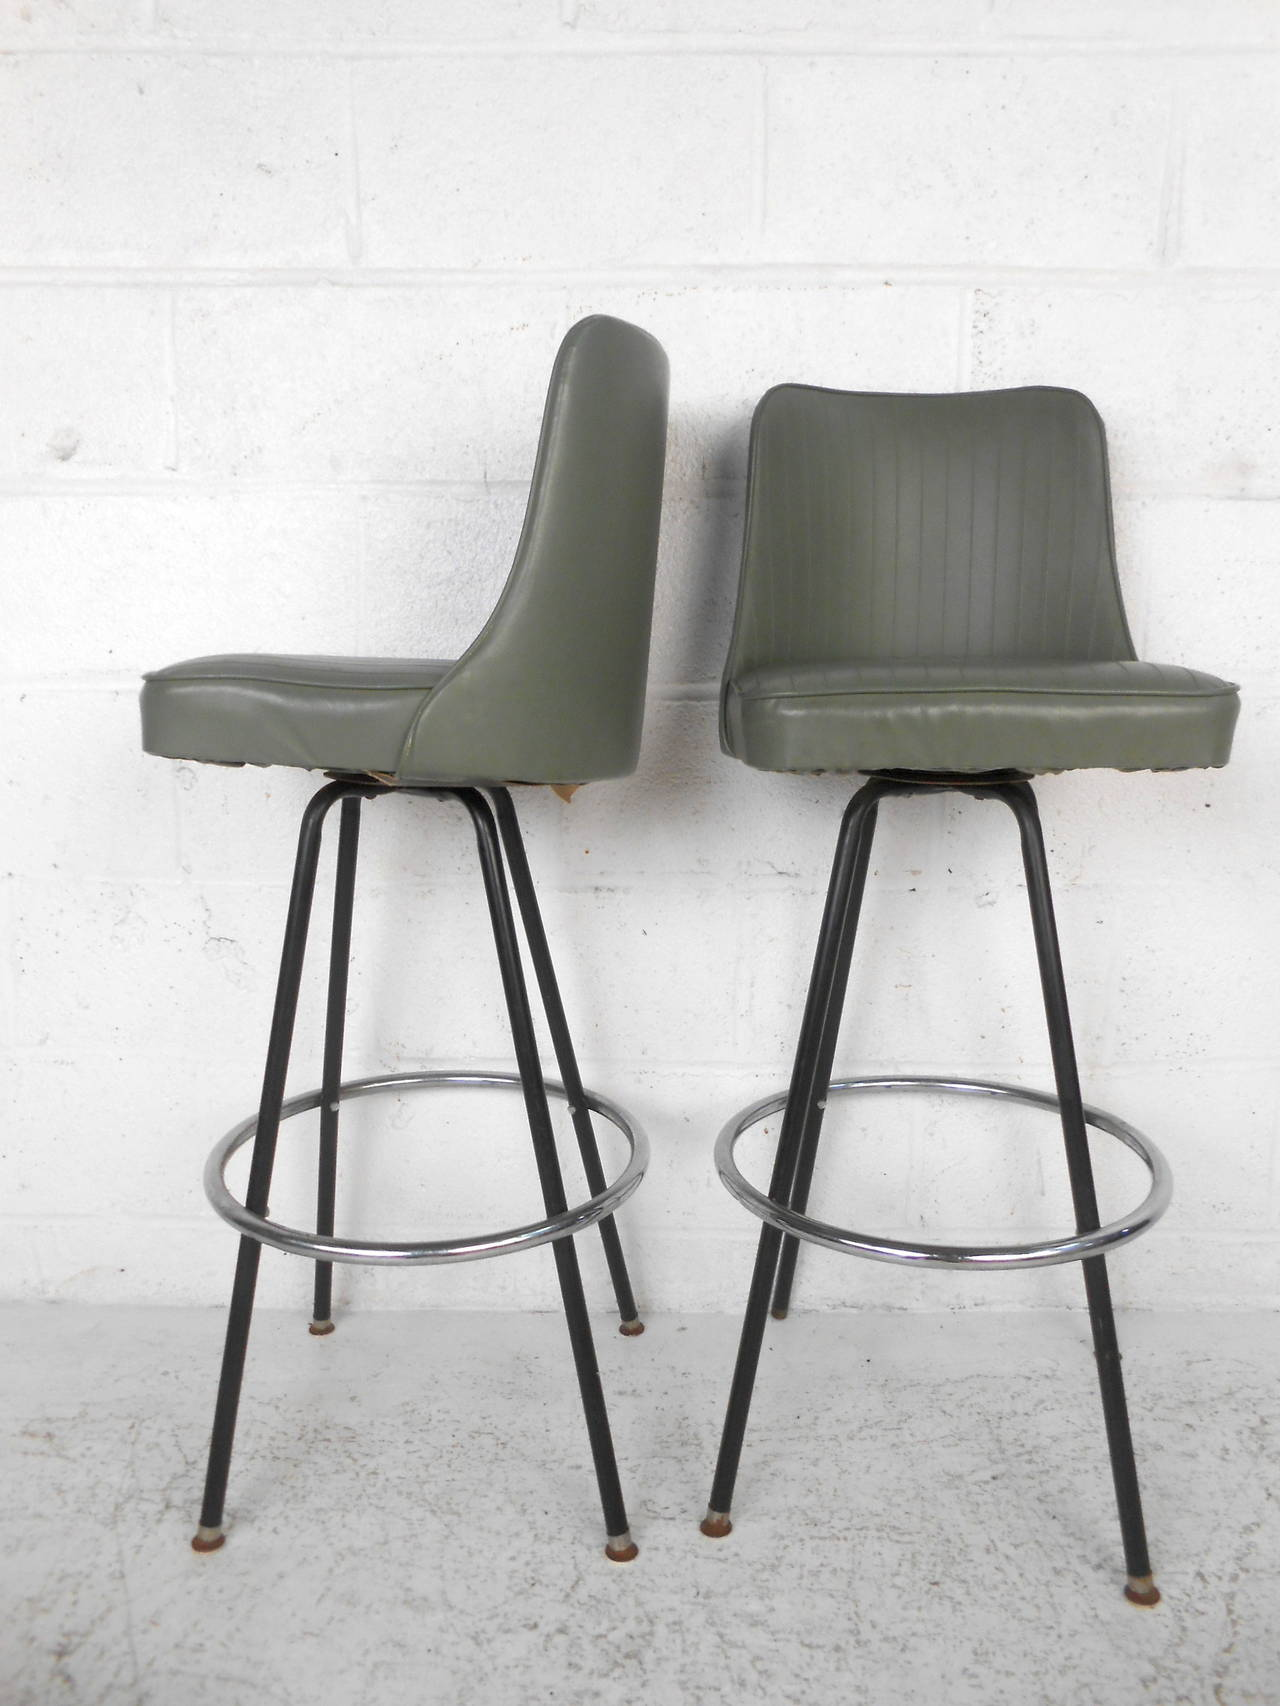 Mid-Century Modern Bar Stools by Atlas For Sale at 1stdibs